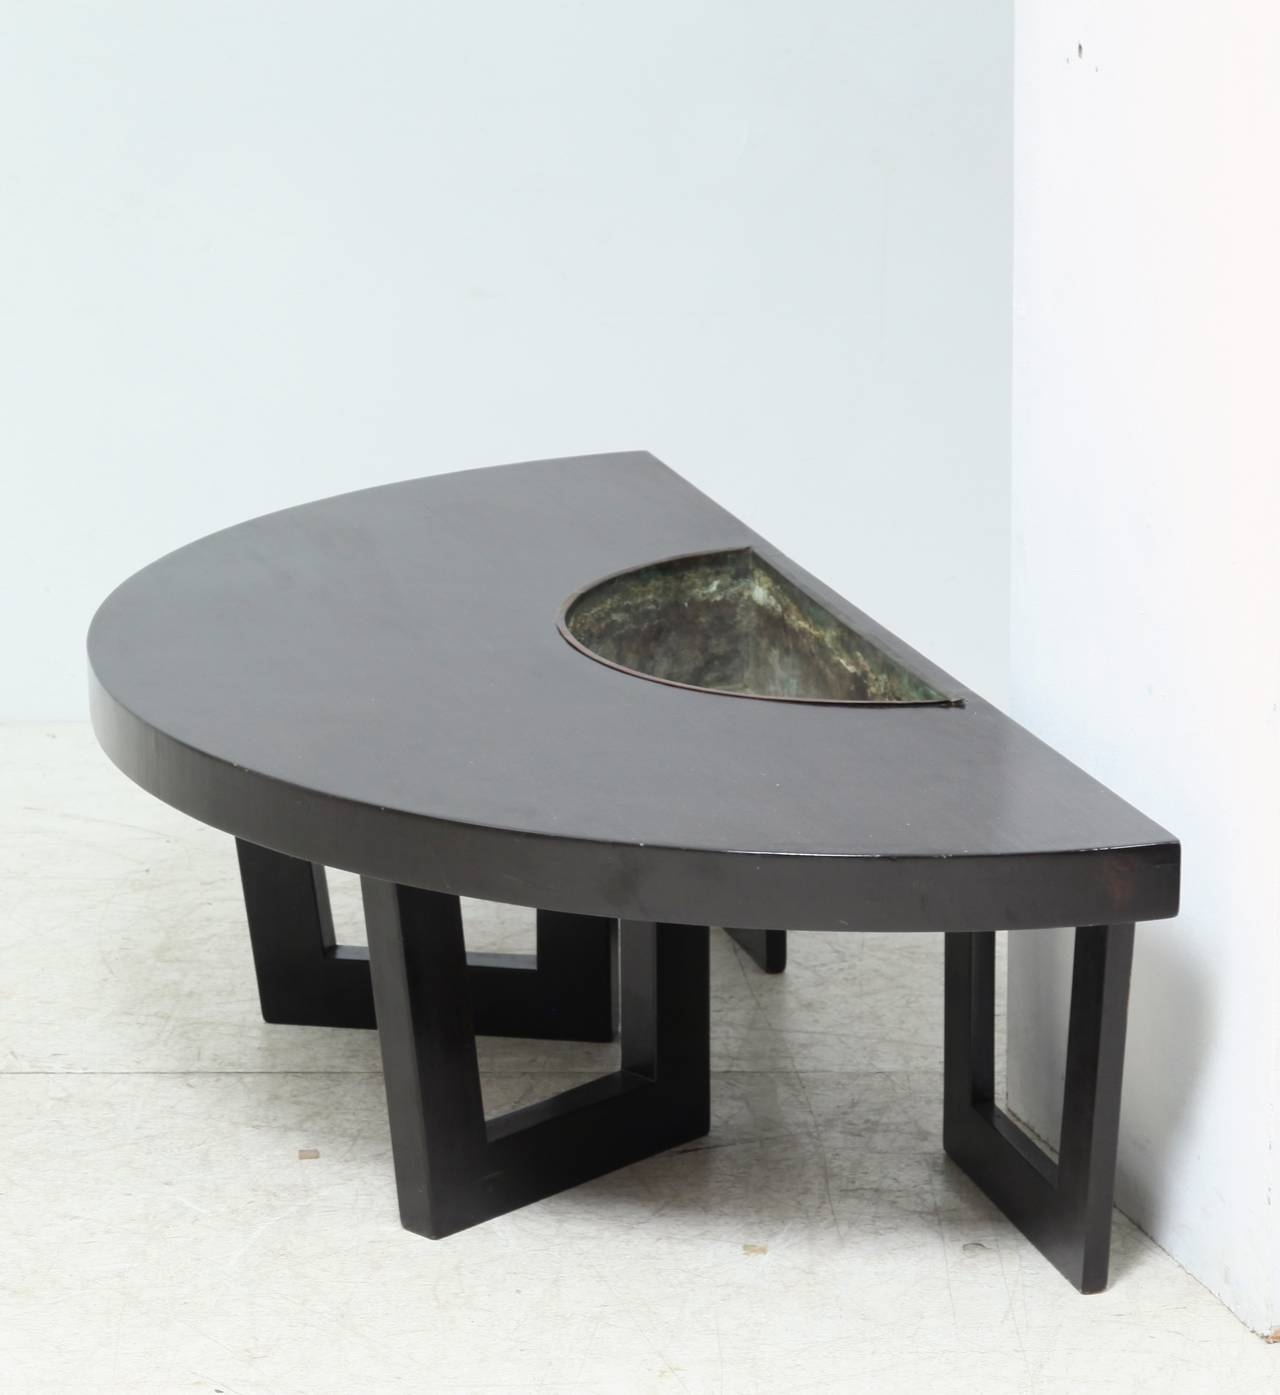 Harvey Probber Semi Circle Coffee Table With Inserted Copper with regard to Circular Coffee Tables (Image 23 of 30)